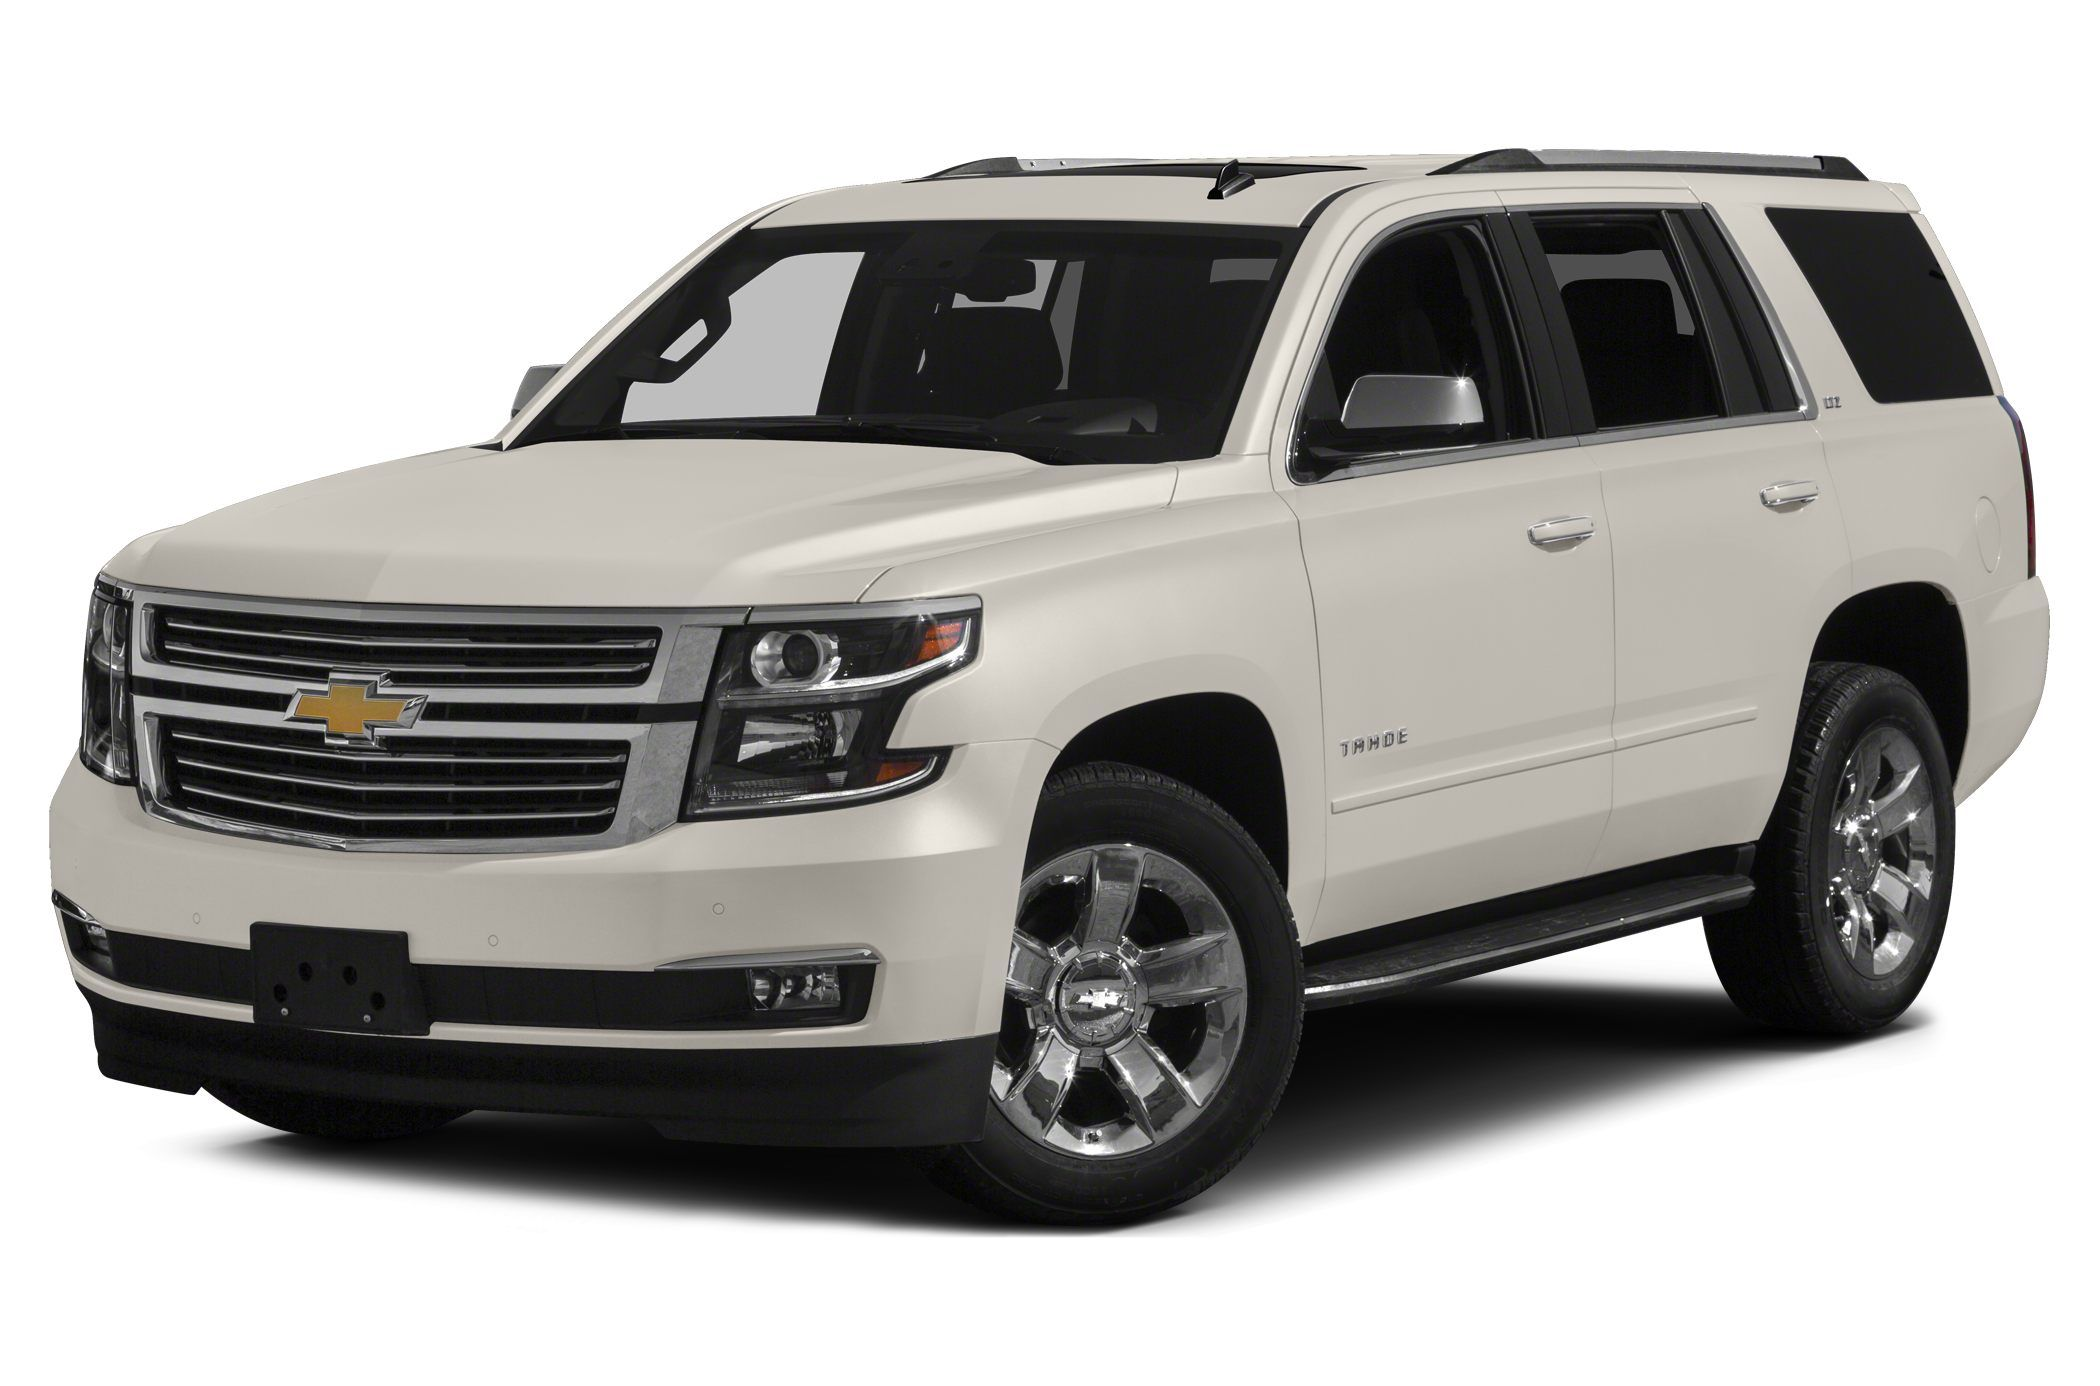 2015 Chevy Tahoe Similar To The Classic Trailblazer Ltz